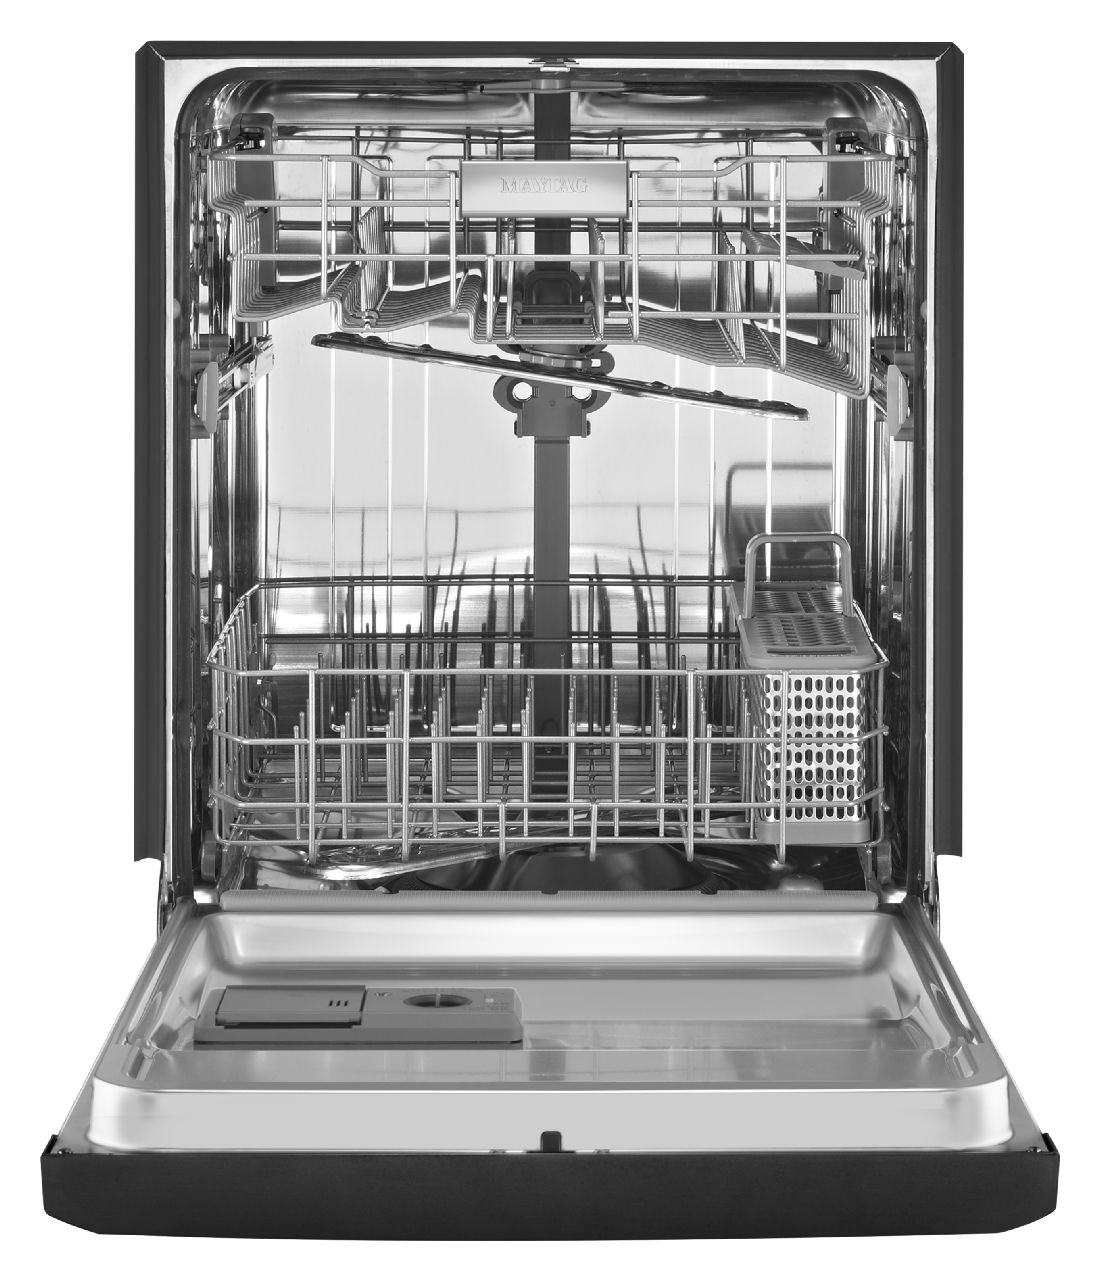 """Featured image for """"Soap Not Dissolving in Dishwasher"""""""